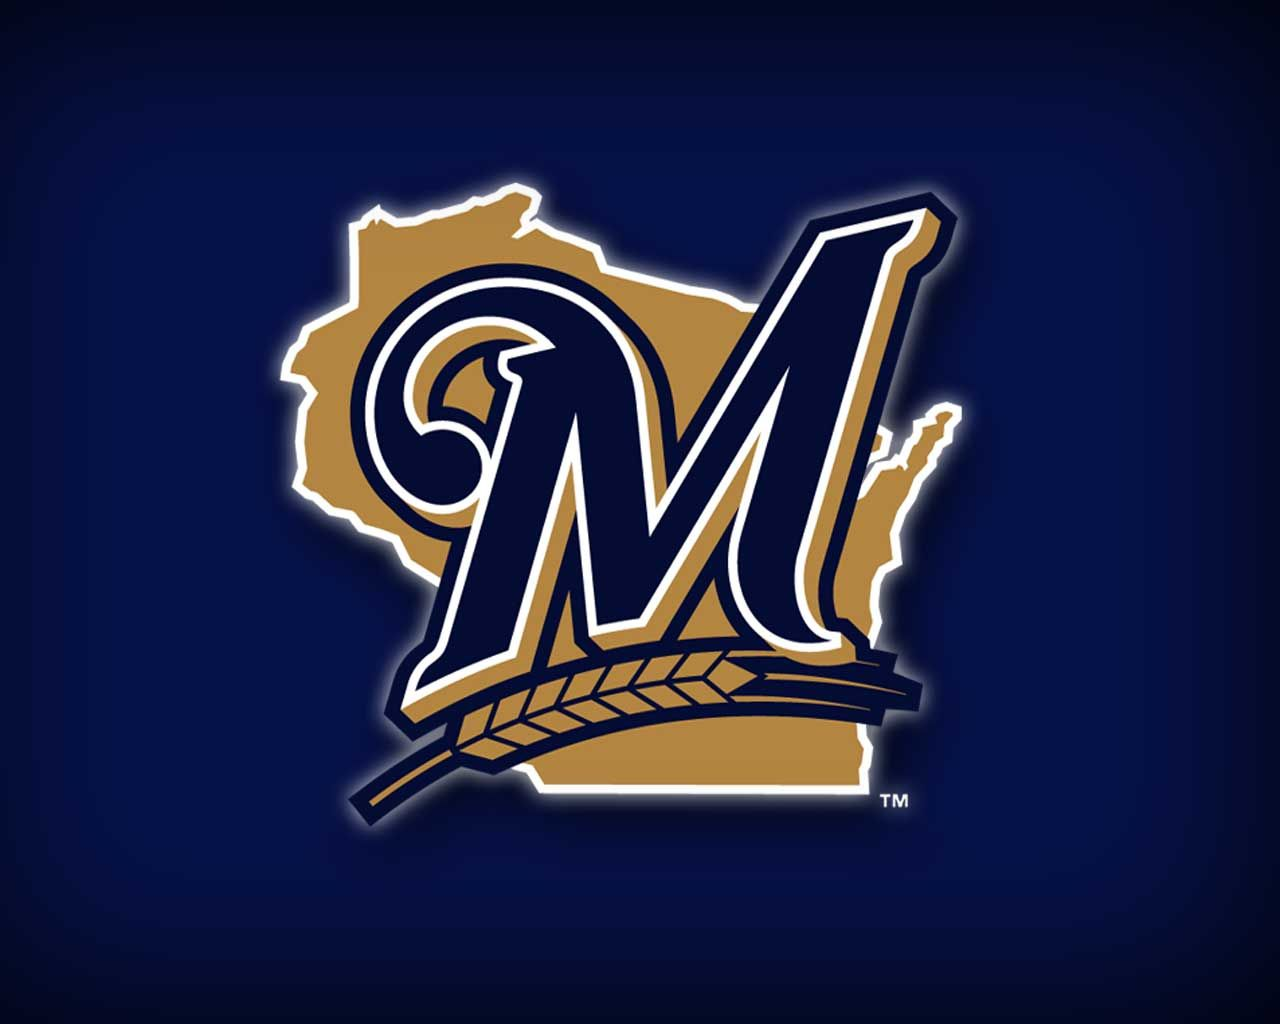 the milwaukee brewers are a professional baseball team based in milwaukee wisconsin the team is a member of the central division of major league